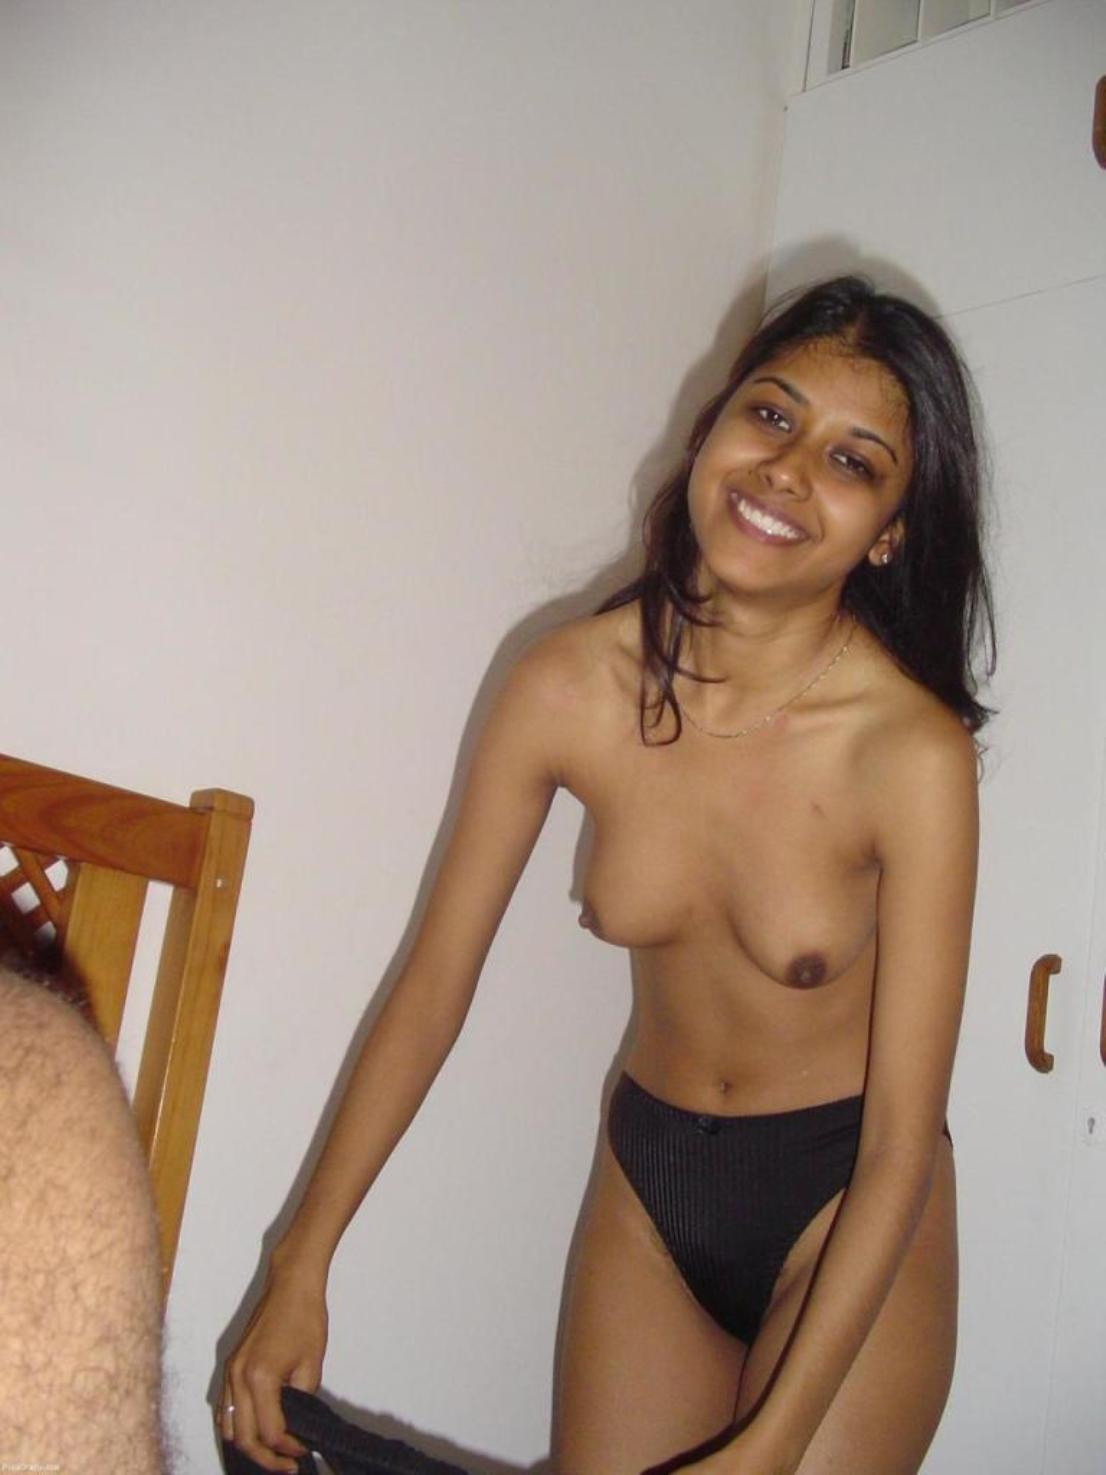 Indian Desi Aunty And Bhabhi Nude Photo Hot Bengali -4503